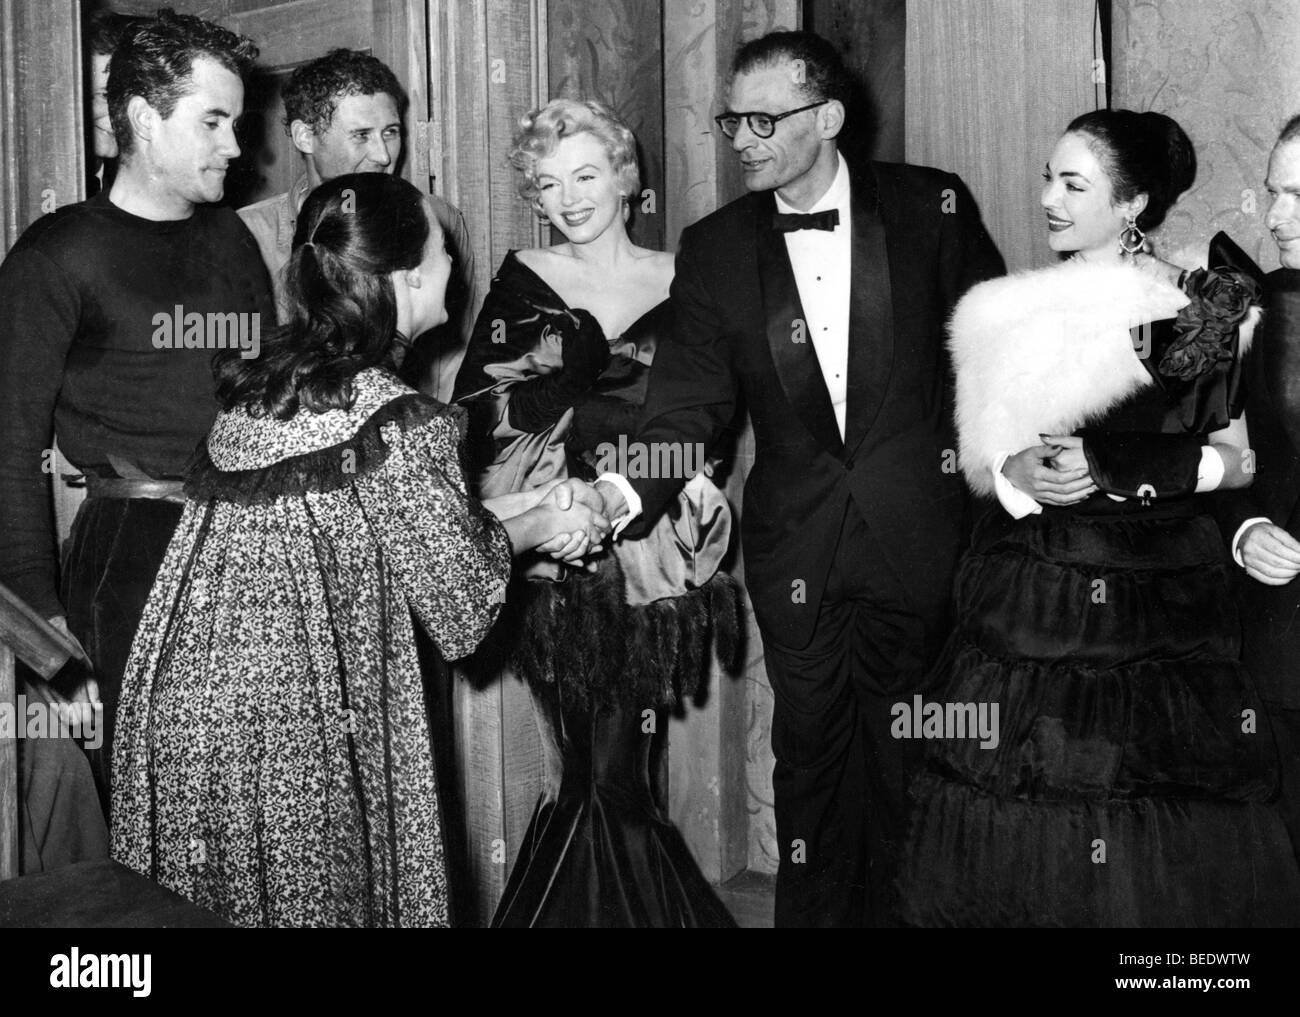 marilyn monroe and husband arthur miller greeting friends stock